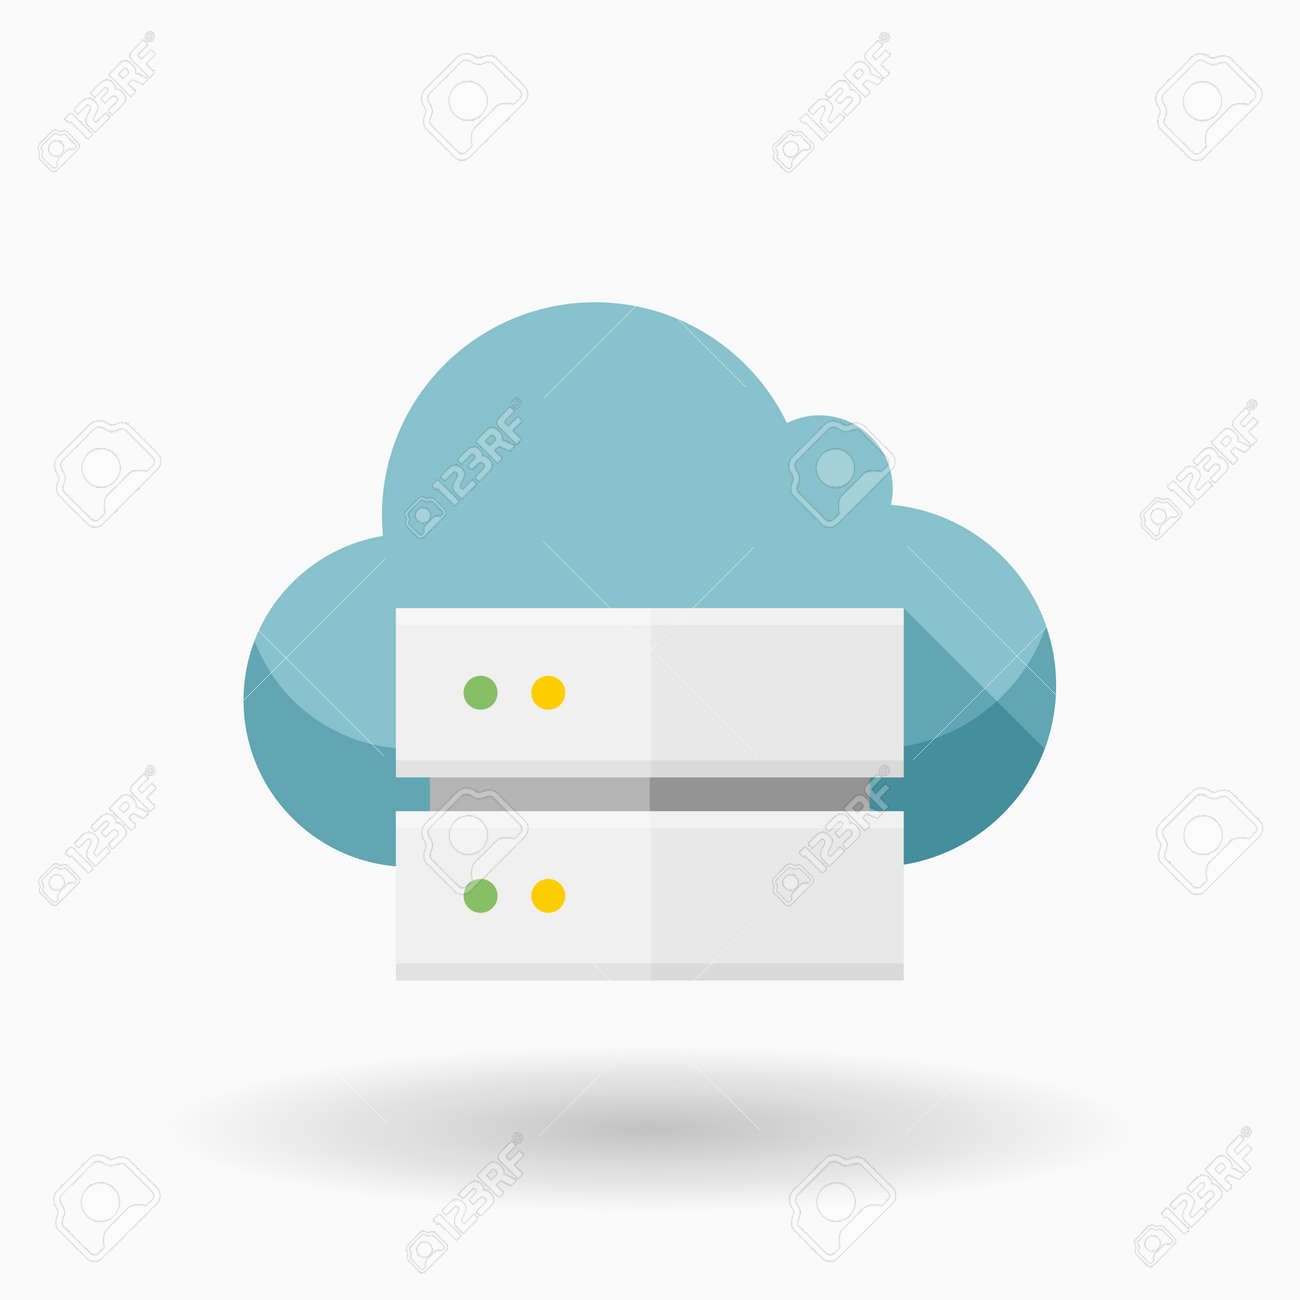 cloud server icon vector illustration flat design style with